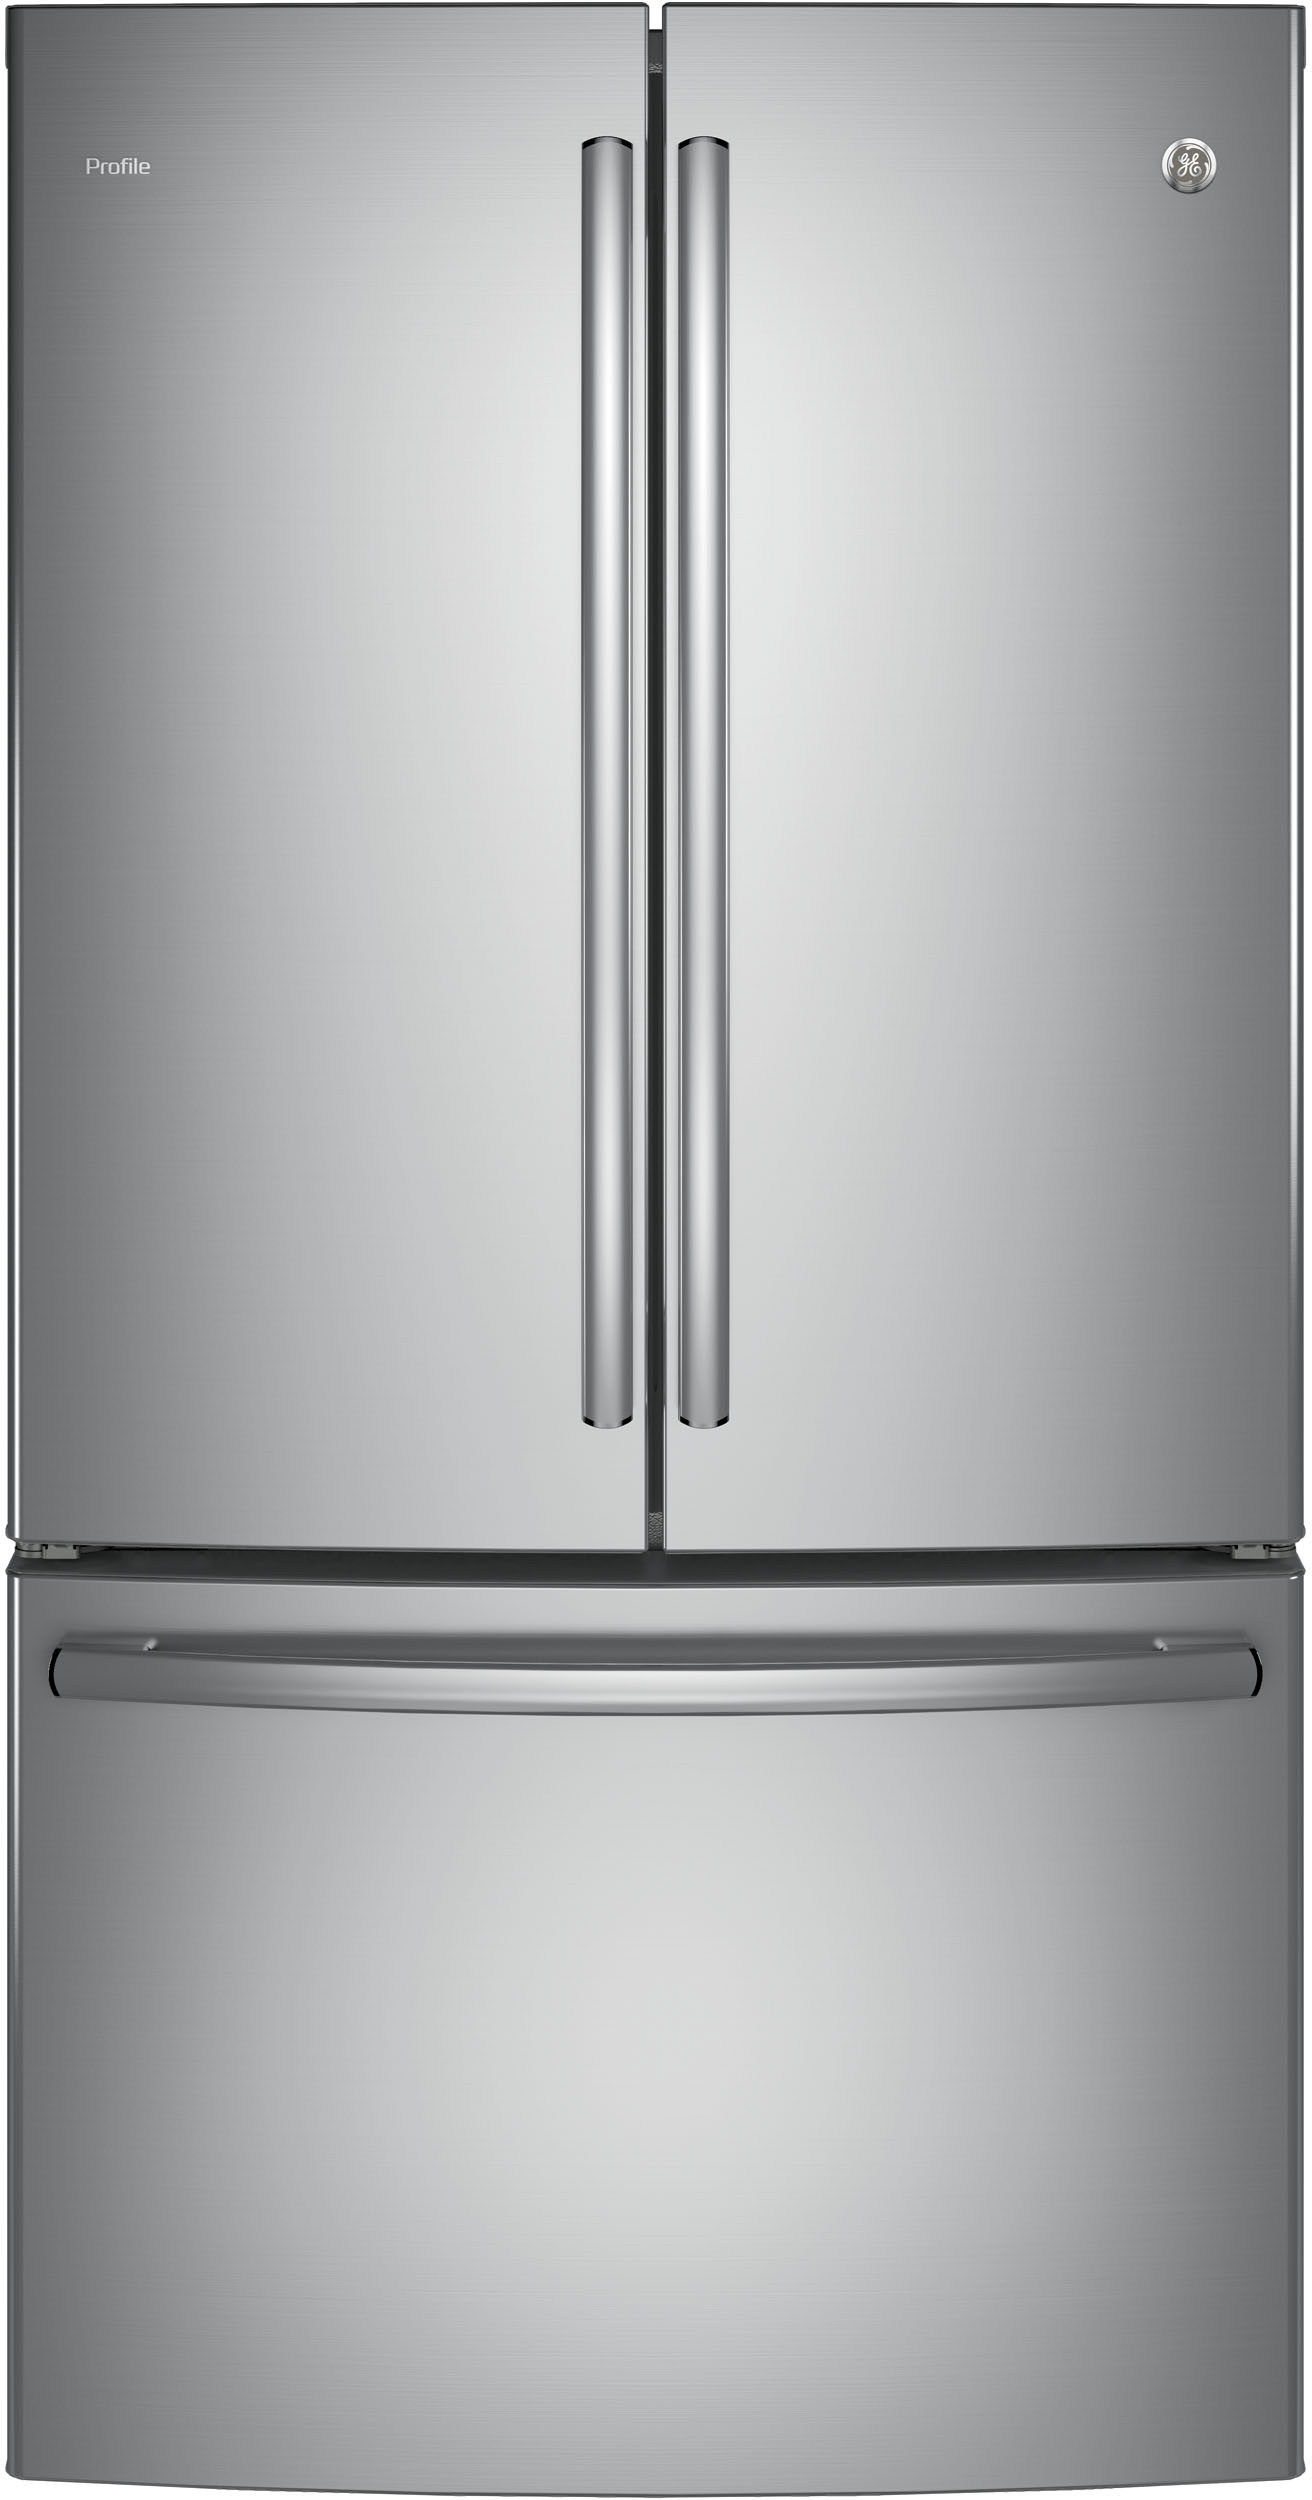 Ge Pwe23kskss 36 Inch Counter Depth French Door Refrigerator With Twinchill Turbo Cool Freeze Ice Maker Internal Water Dispenser Advanced